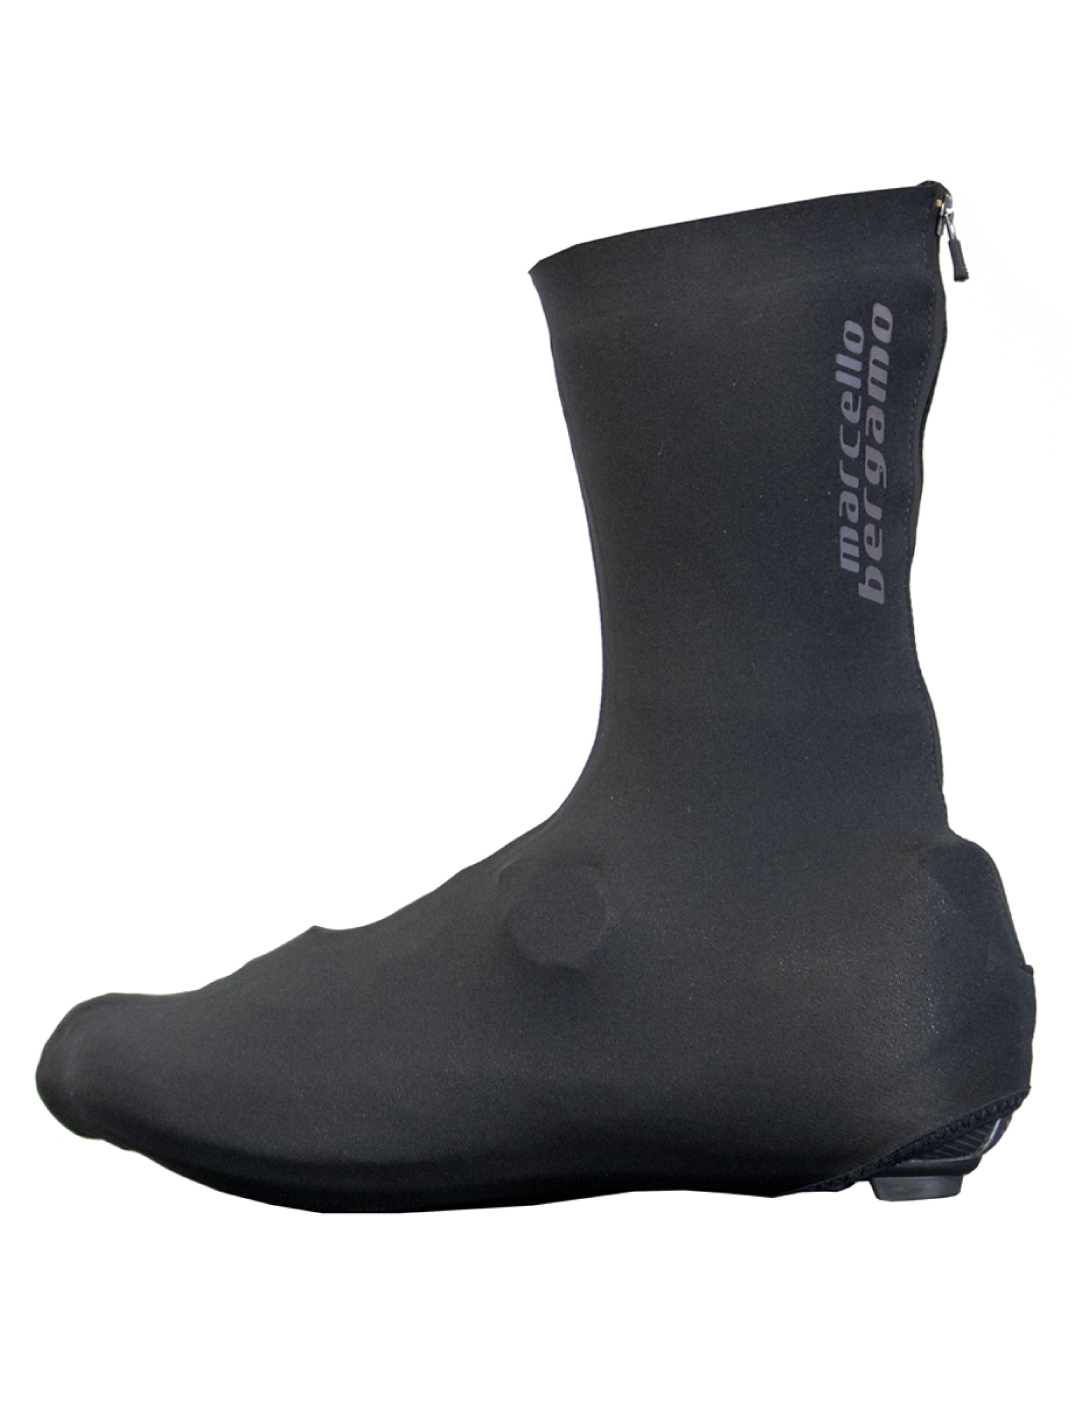 Bora Waterproof Winter Overshoes with zip